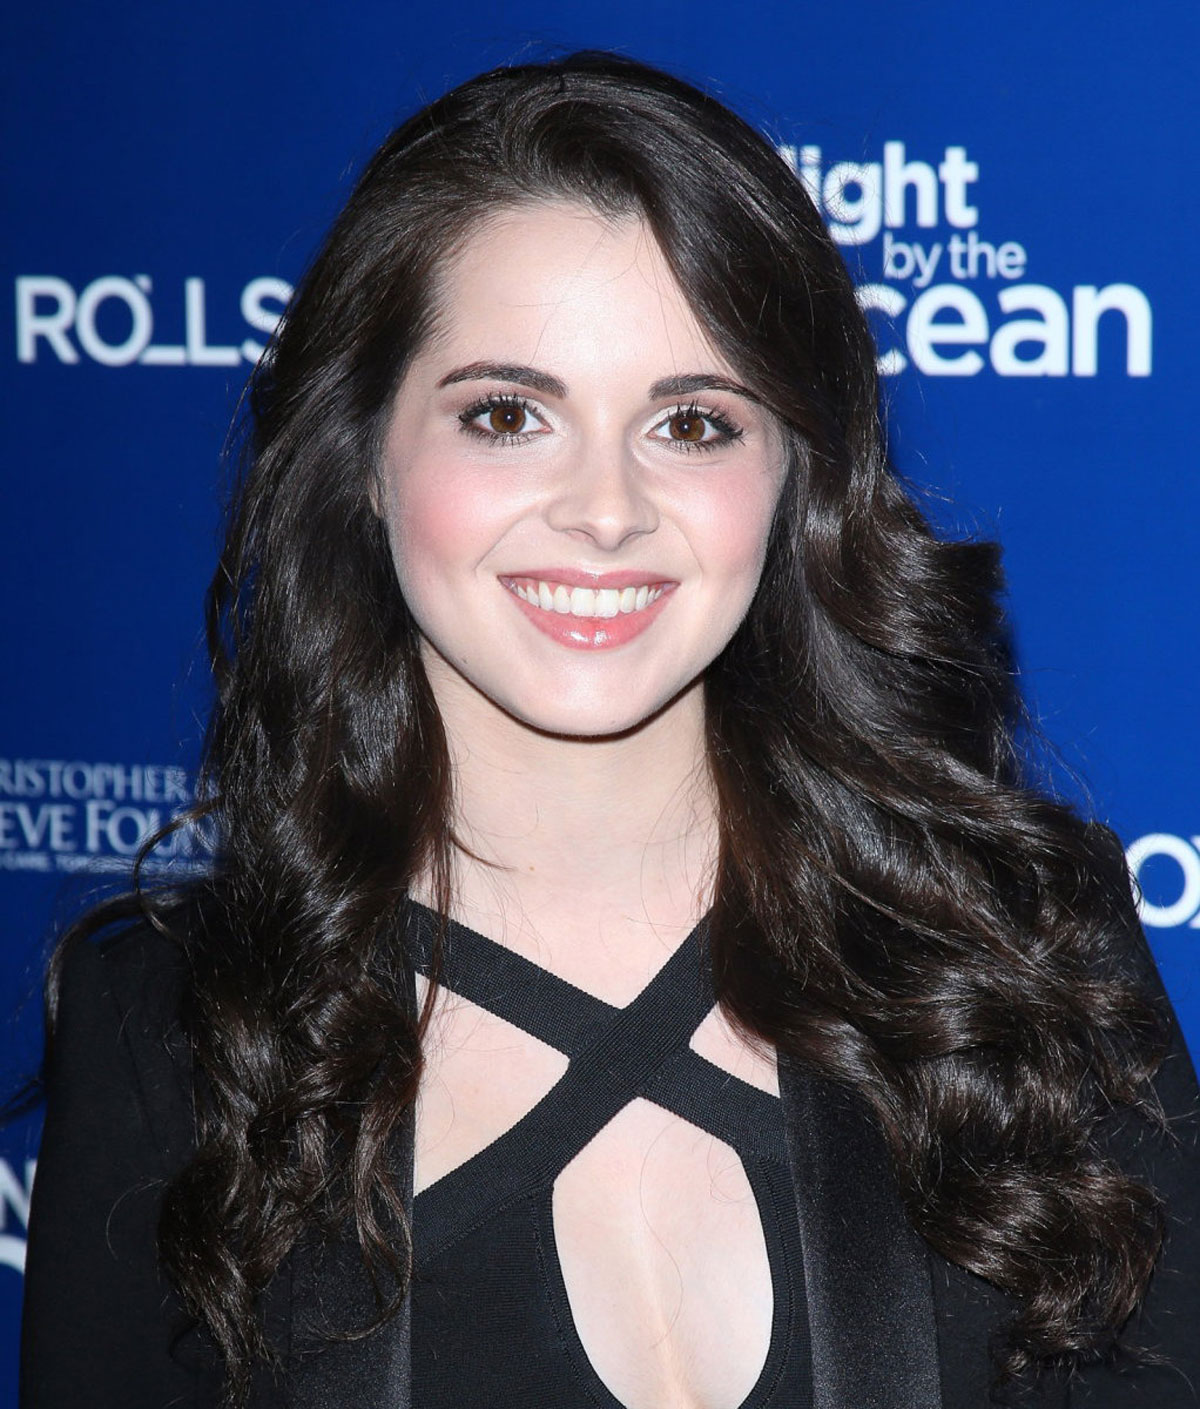 VANESSA MARANO at Life Rolls on Foundation Night by The Ocean in    Vanessa Marano